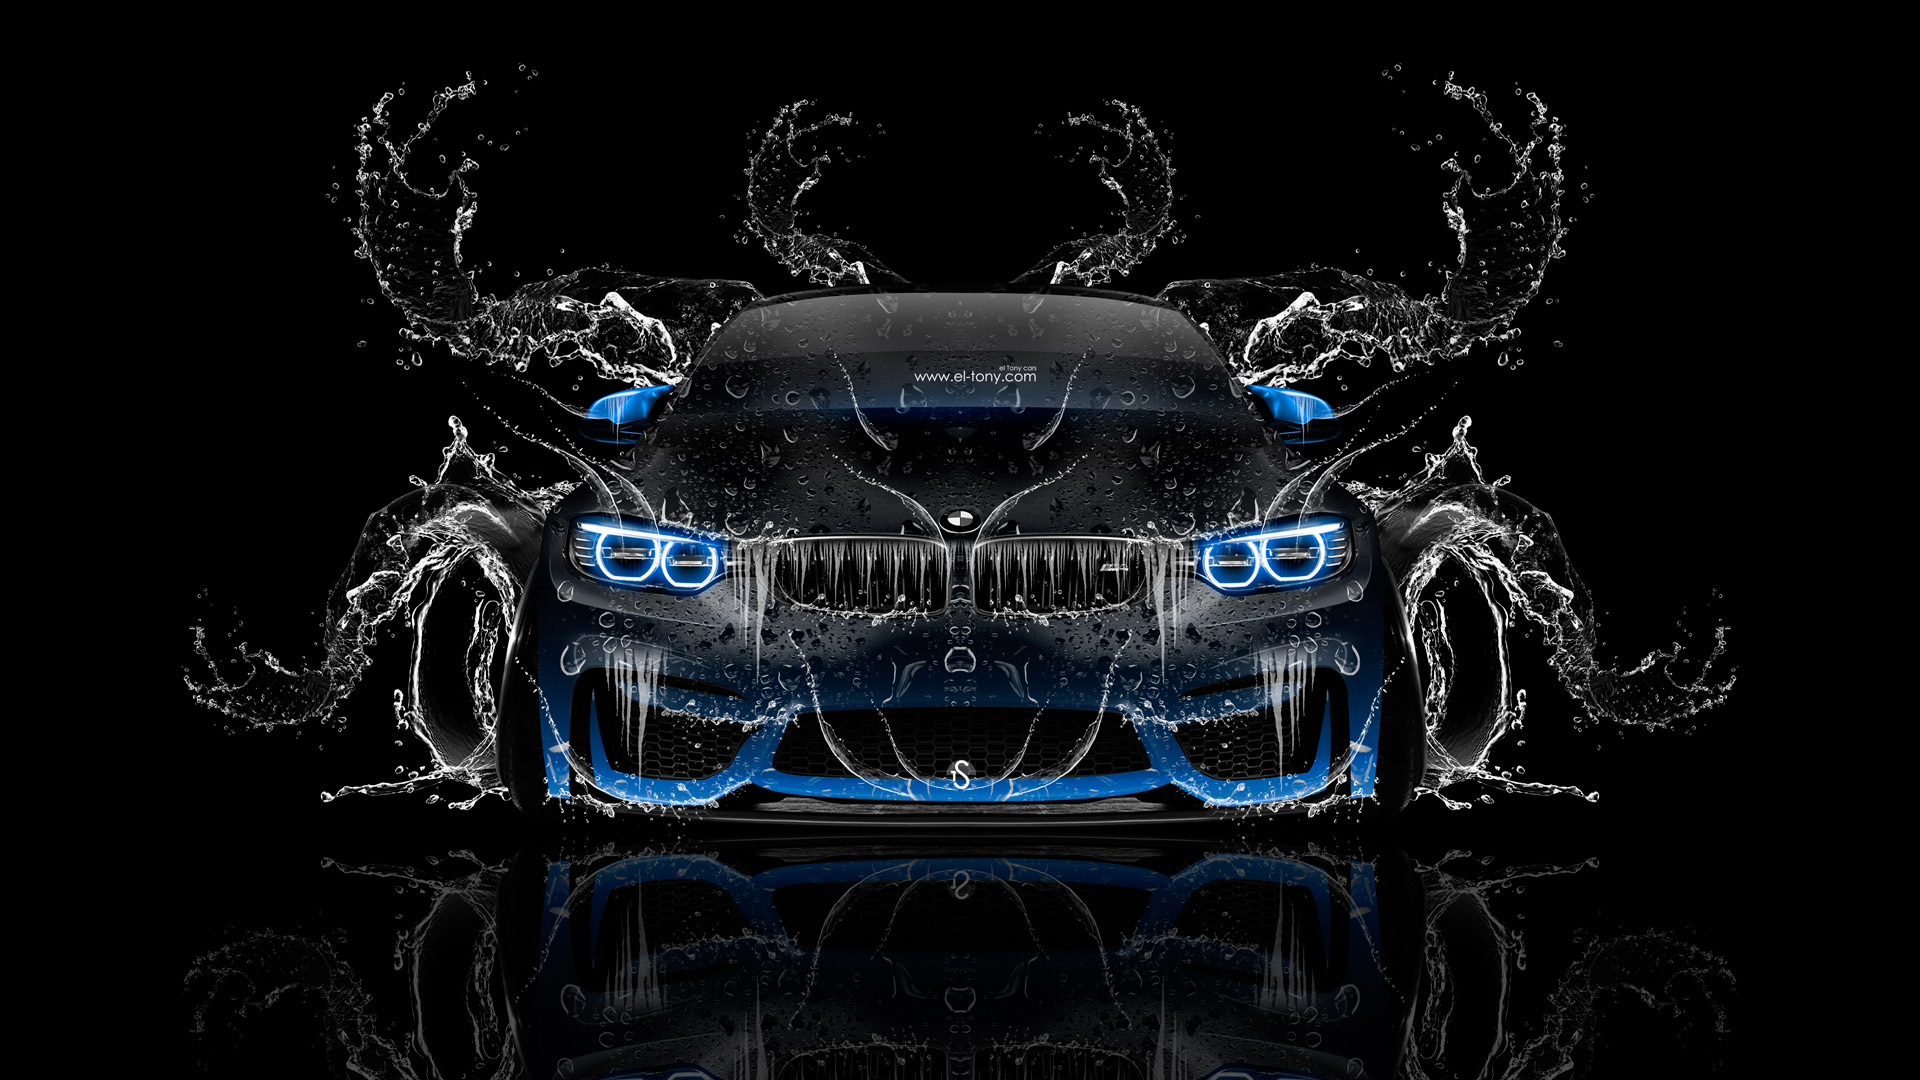 BMW-M4-Tuning-Front-Super-Splashes-Water-Car-2016-Fantasy-Blue-Neon-Colors-HD-Wallpapers-el-Tony-Cars-design-by-Tony-Kokhan-www.el-tony.com-image